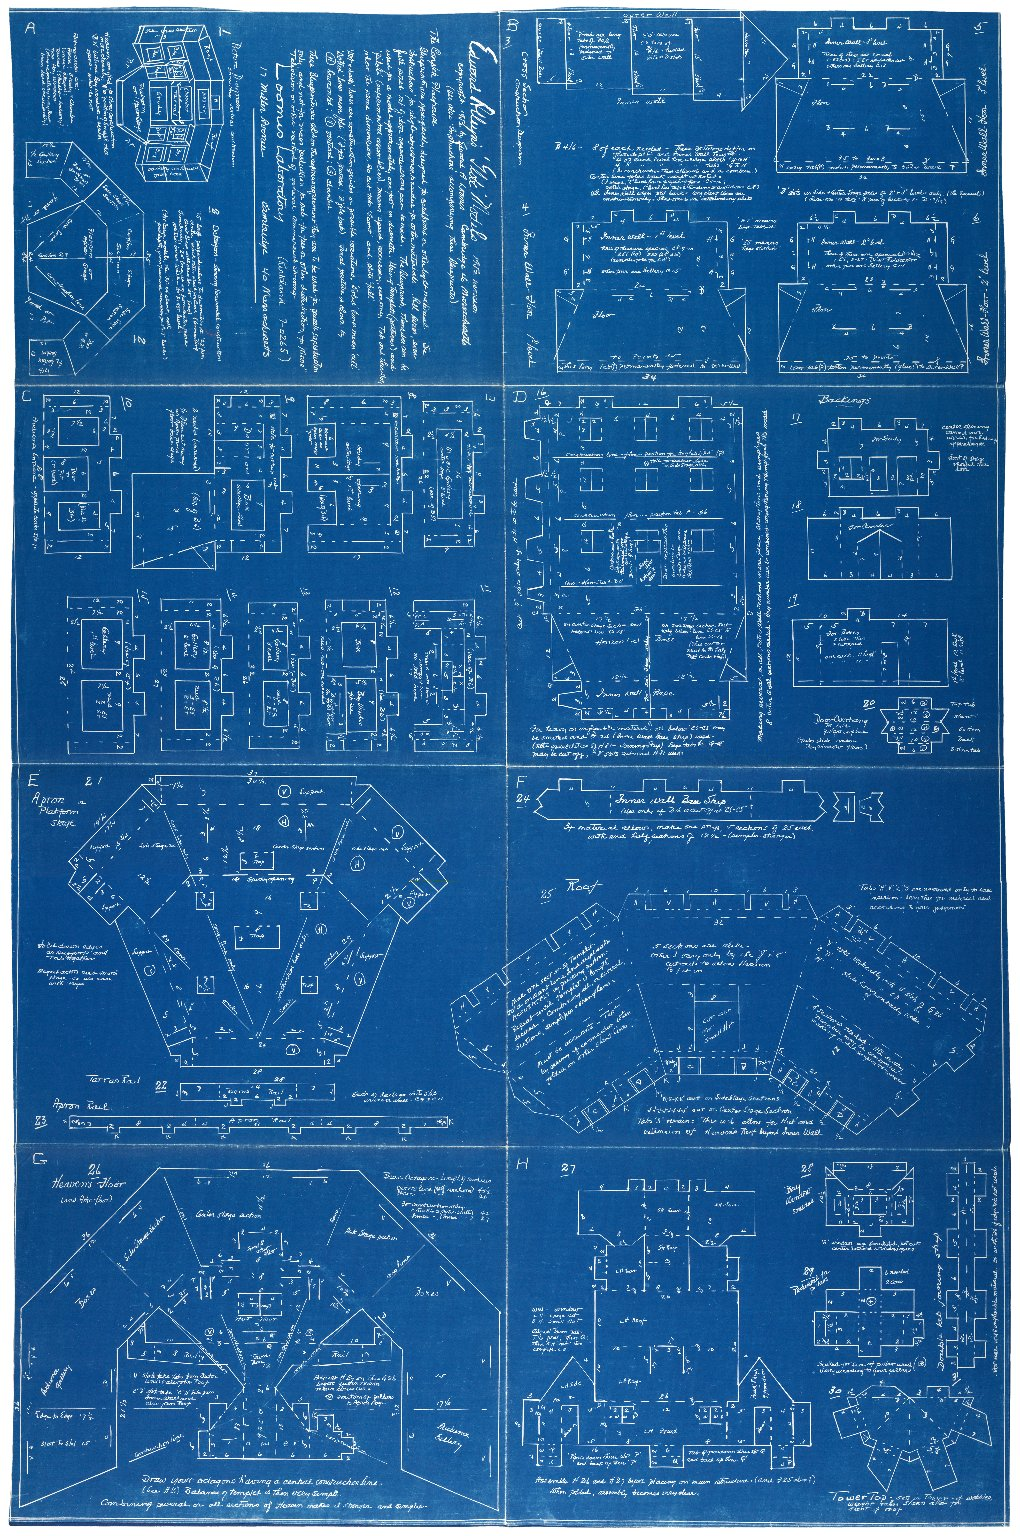 Blueprints For A Modern Four Bedroom Home: Blueprints For Making A Model Of Shakespeare's Globe